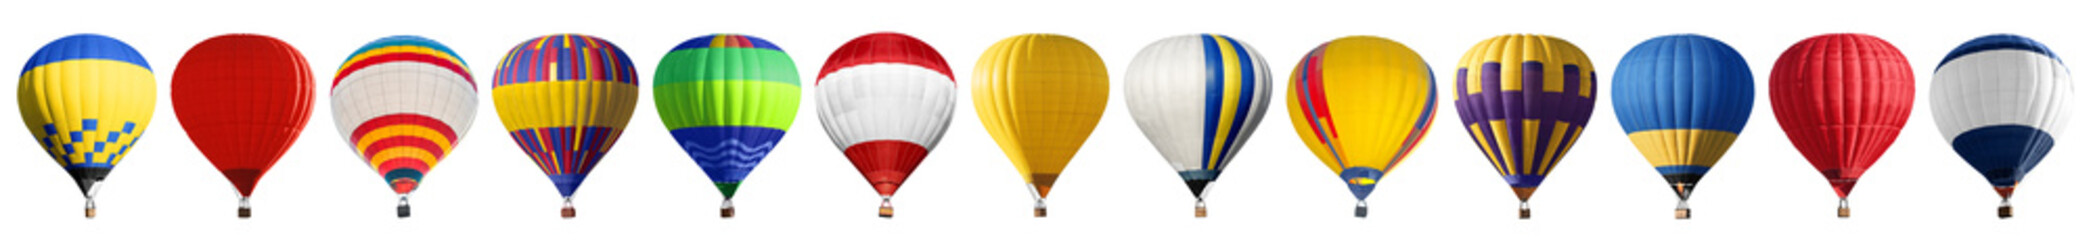 Set of bright colorful hot air balloons on white background